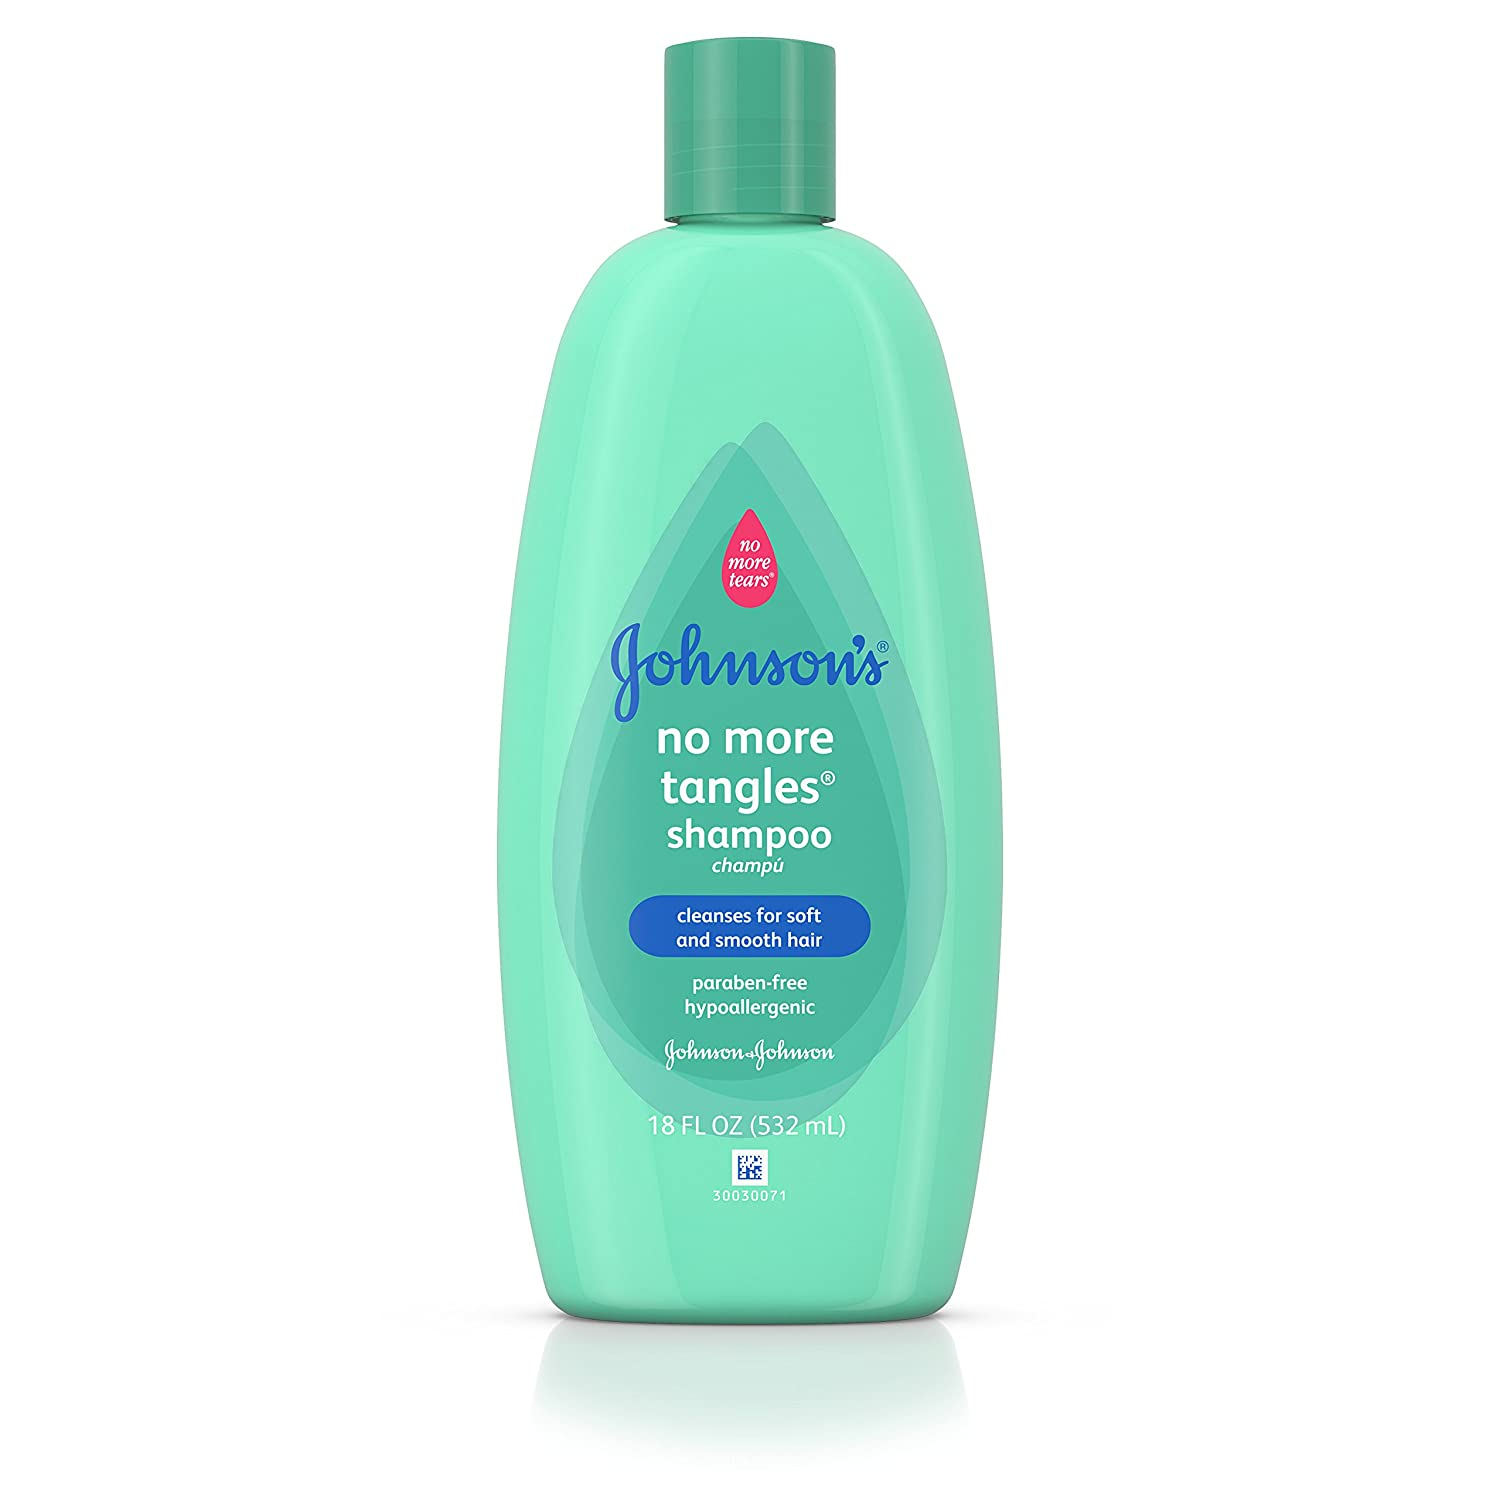 Jonnson & Johnson No More Tangles Shampoo + Conditioner 530 ml Johnson & Johnson 4349